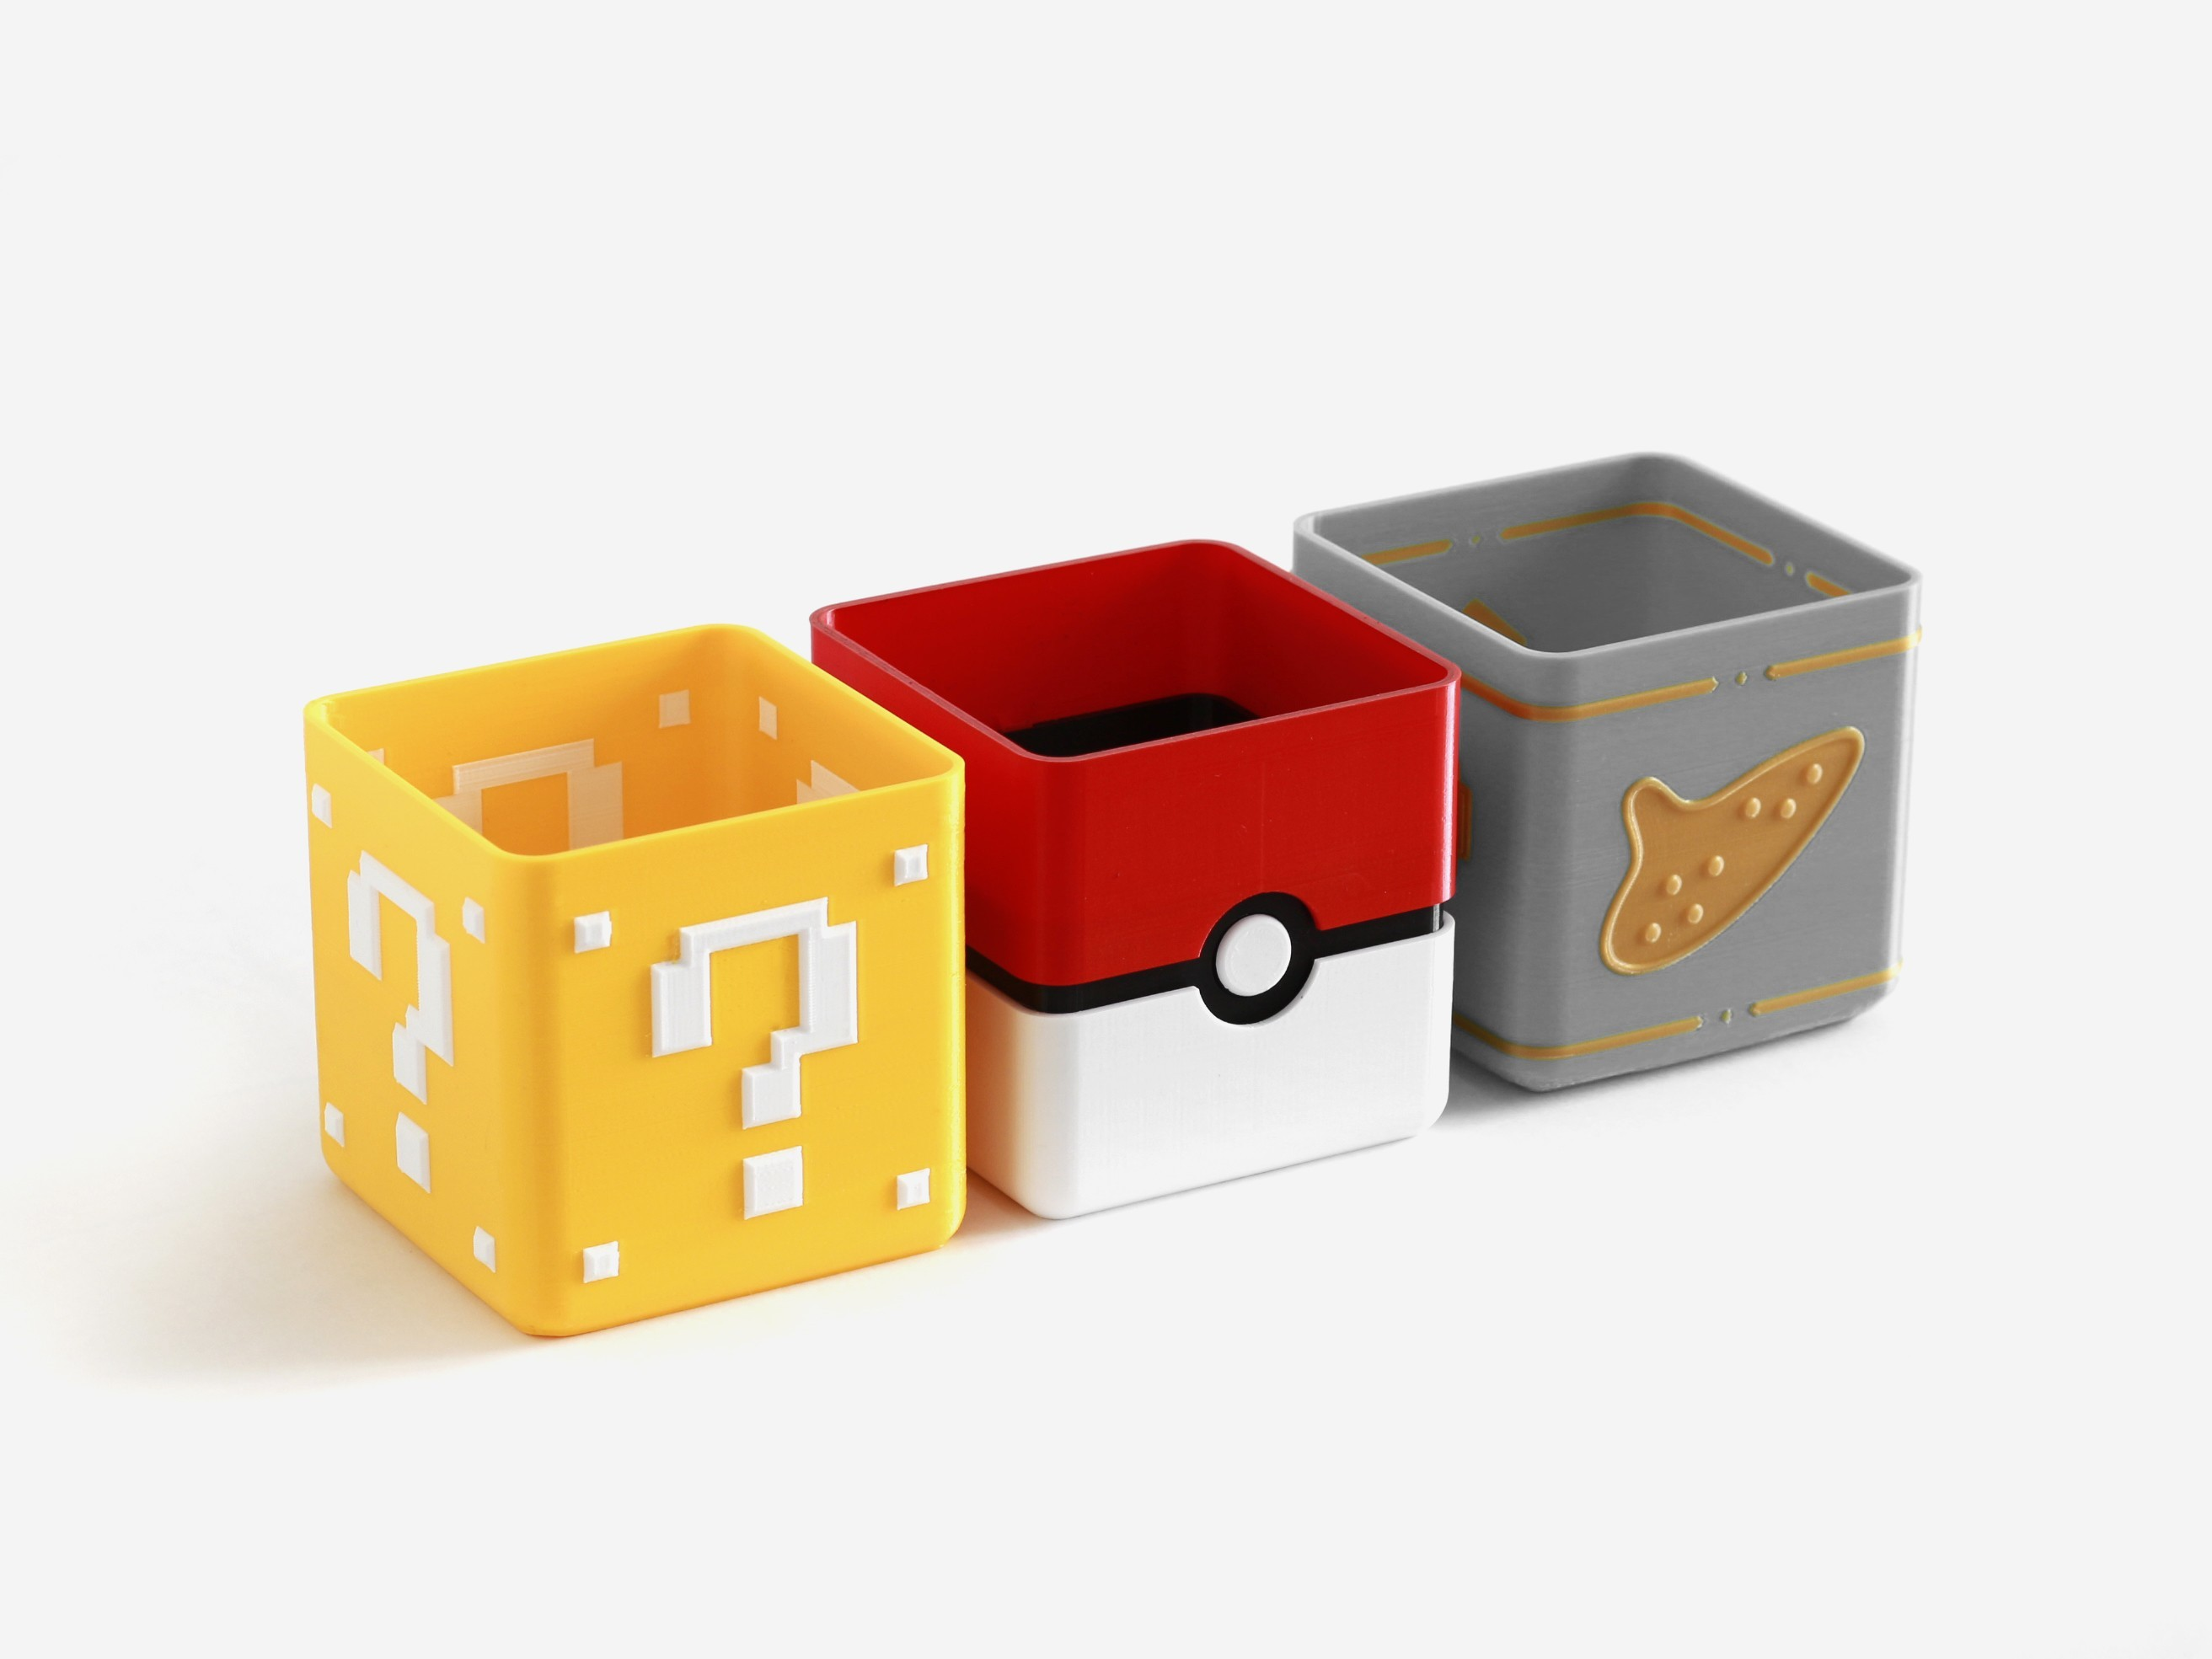 videogame_planter_1_thingiverse.jpg Download free STL file Video Game Planter Collection • Object to 3D print, flowalistik